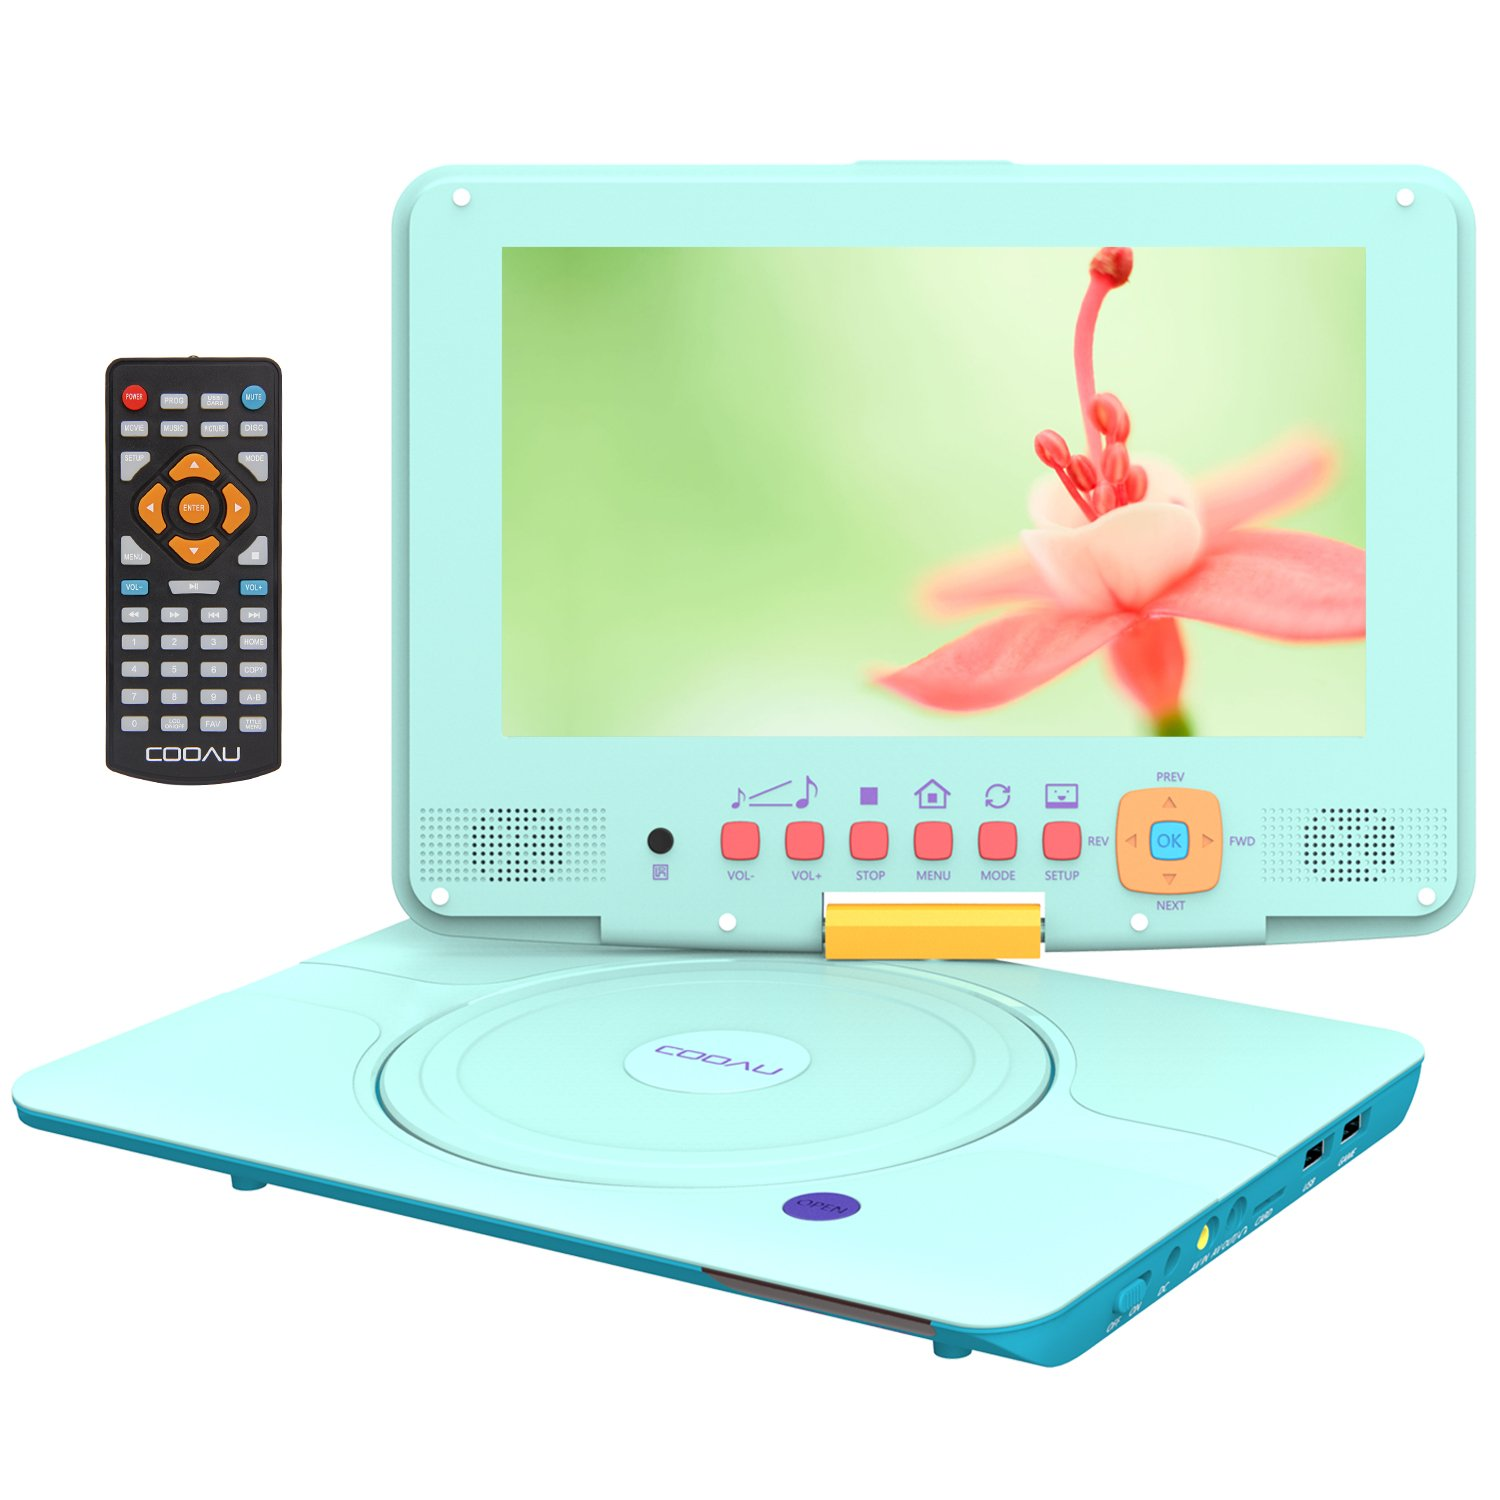 COOAU 12'' Kids Portable DVD Player with 9'' Swivel Screen, 5 Hours Rechargeable Battery, Remote Controller, Car Charger, Support TF Card/USB/Sync Screen/1080P Video Playback, Light Blue